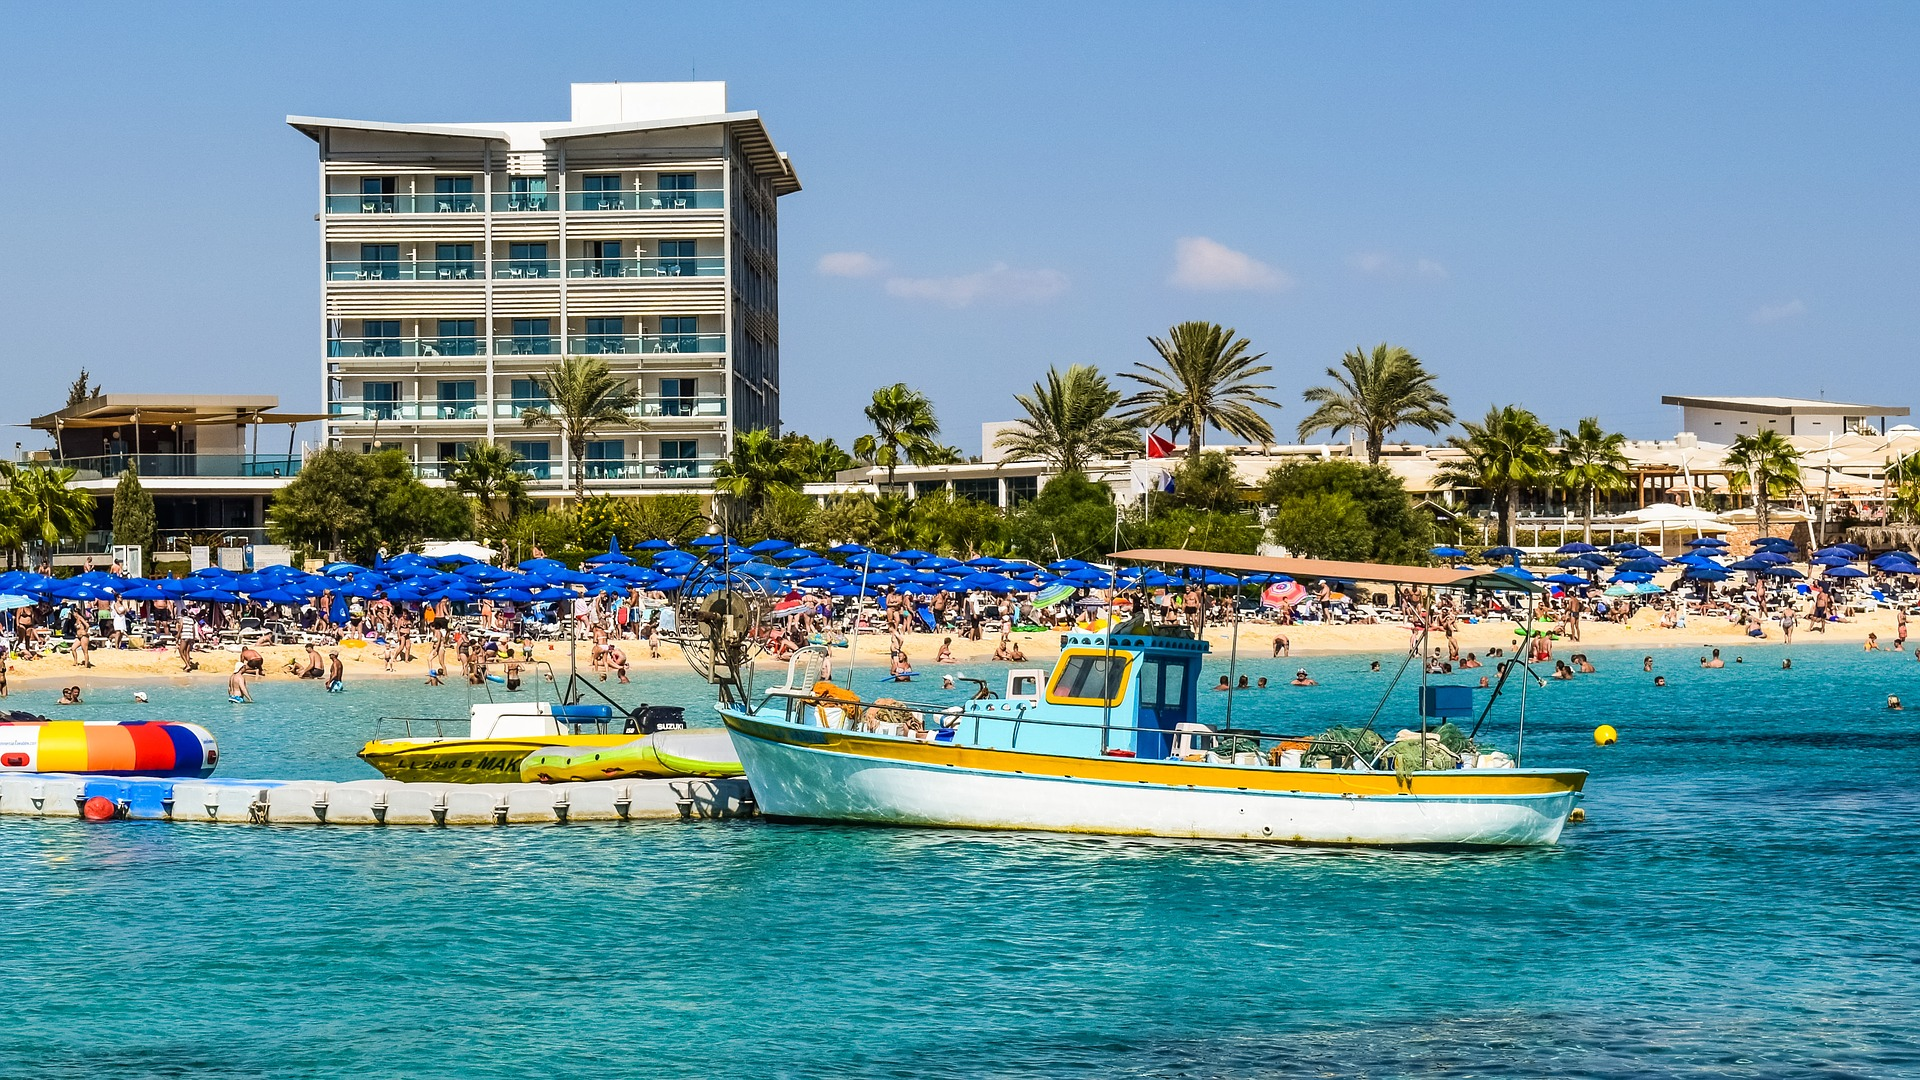 Ayia Napa hotel and beach